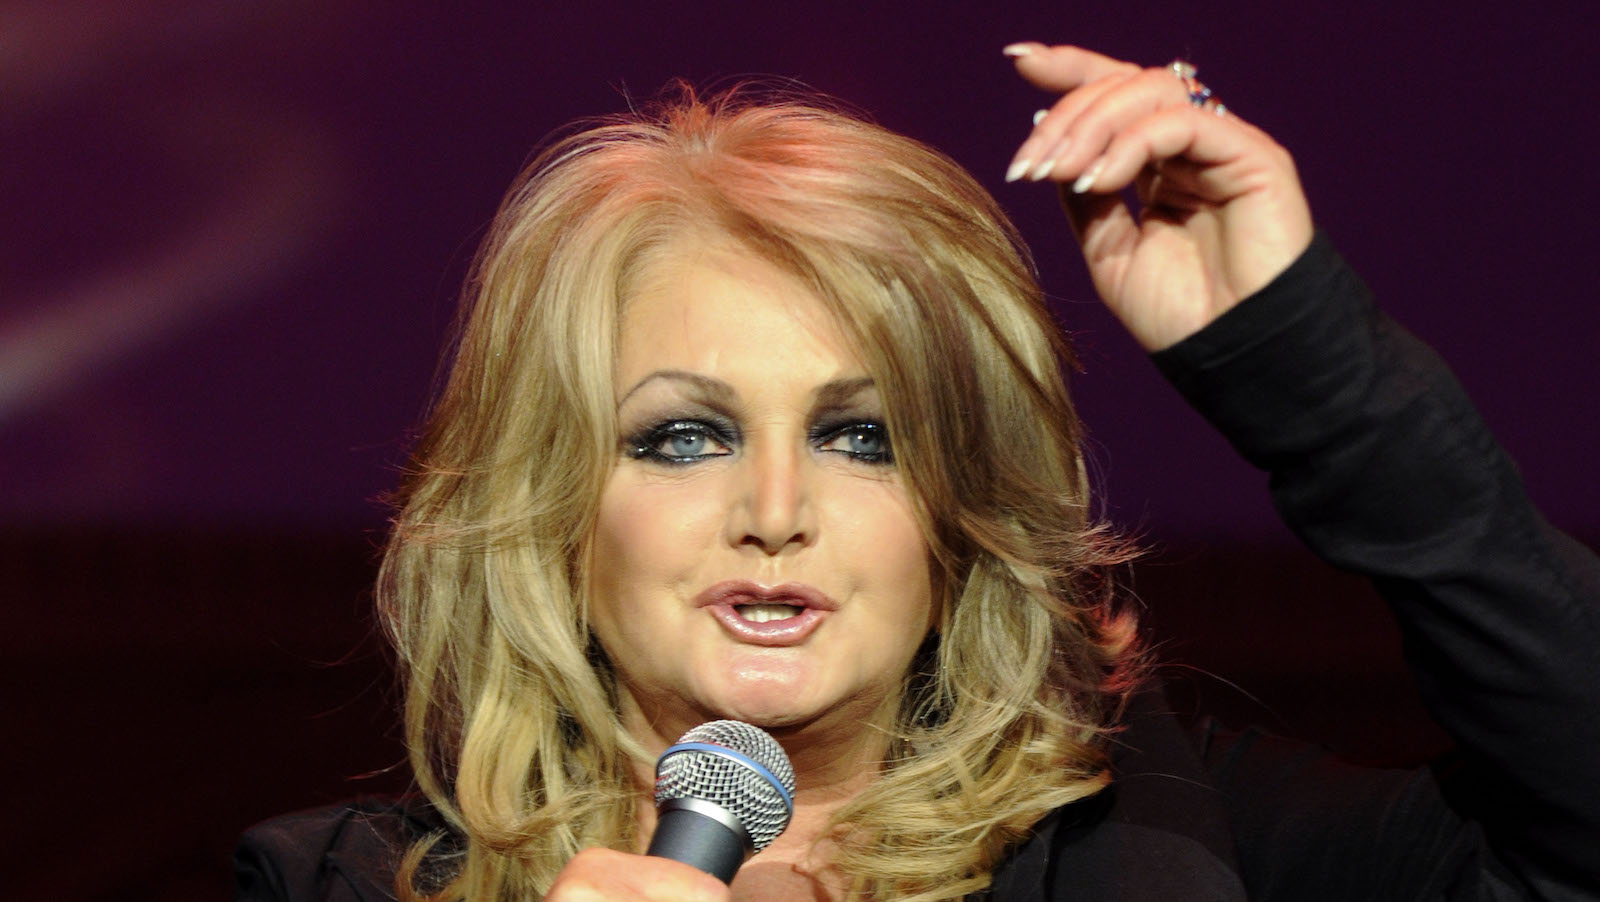 "Die walisische Saengerin Bonnie Tyler singt am Samstagabend, 27. Februar 2010, auf dem Deutschen Opernball  in Frankfurt. Mehr als 2.000 Gaeste feierten zugunsten der Bildungsinitiative ""ABC-2015"" der Aktion ""Menschen fuer Menschen"". (apn Photo/Bernd Kammerer) --- Welsh singer Bonnie Tyler performs on the stage of the Opera Ball at the Old Opera House in Frankfurt, Germany, Saturday, Feb. 27, 2010. More than 2,000 guests attended the traditional society event. (apn Photo/Bernd Kammerer)"